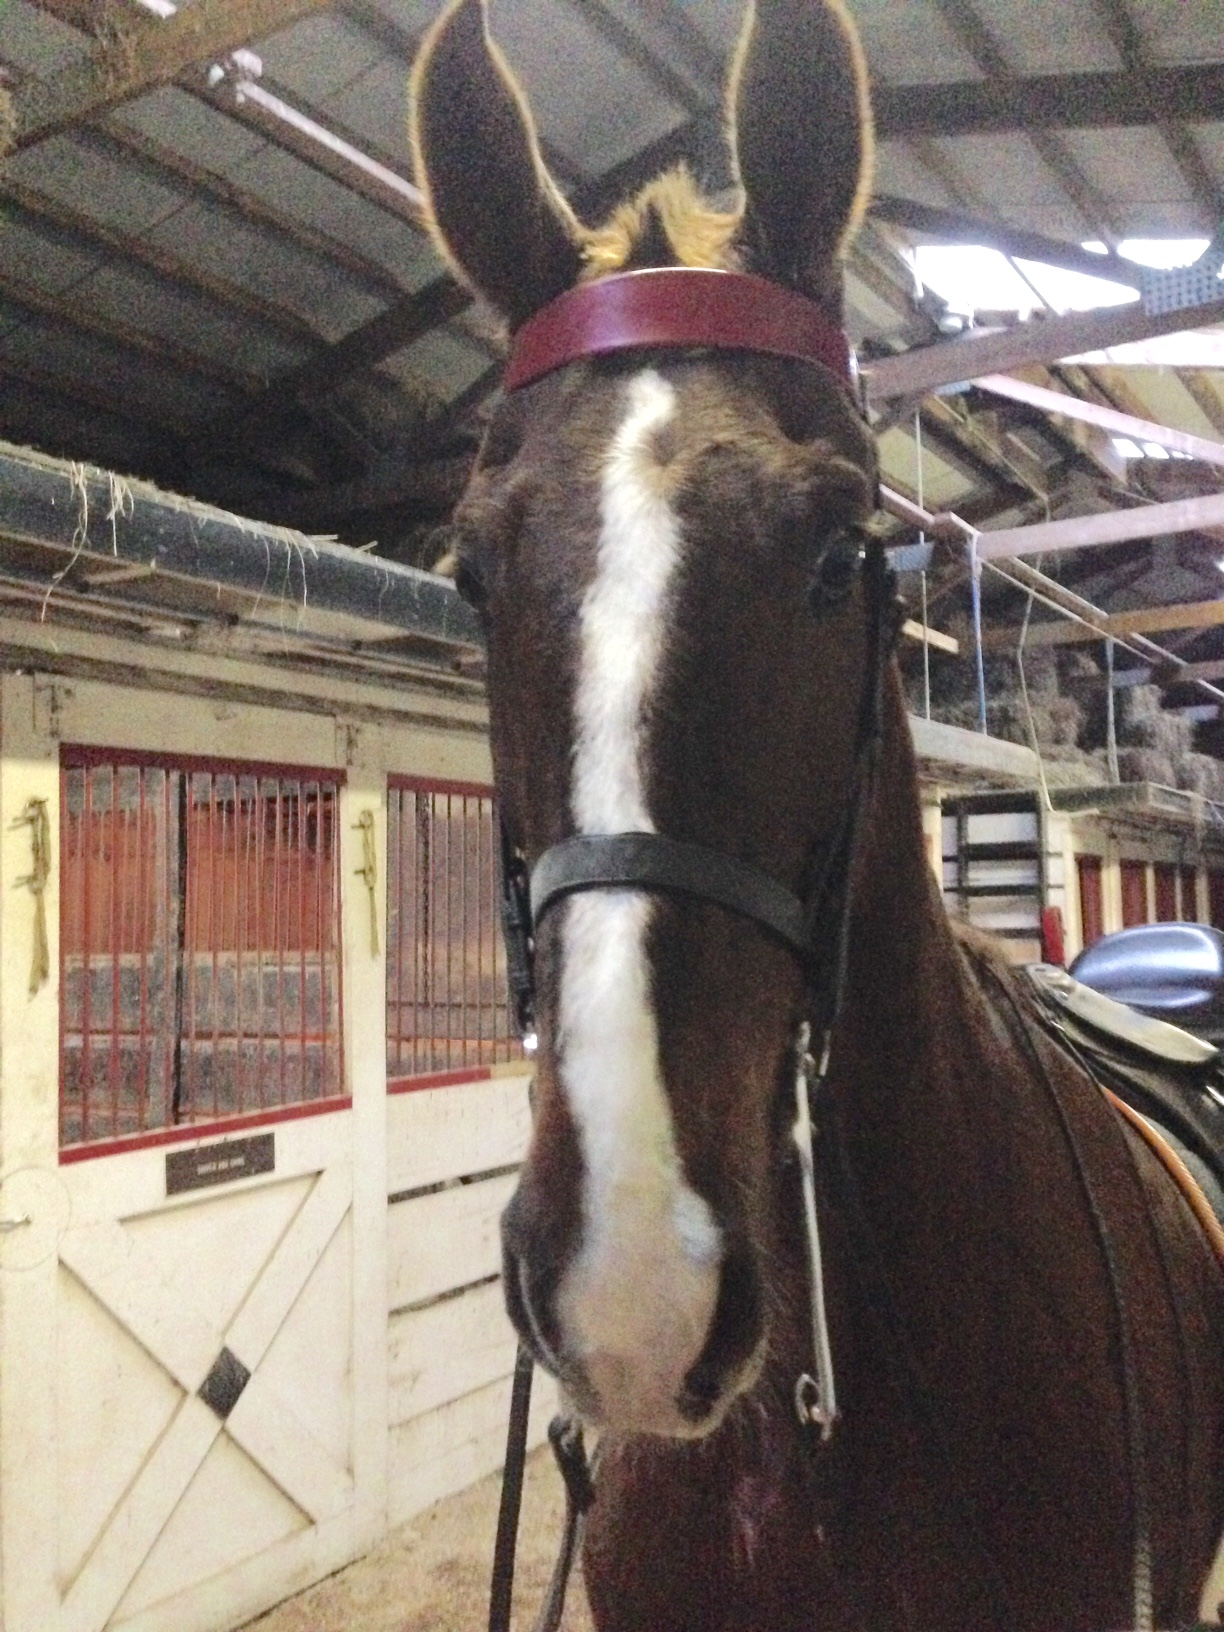 Slider was surprisingly happy in his double bridle.